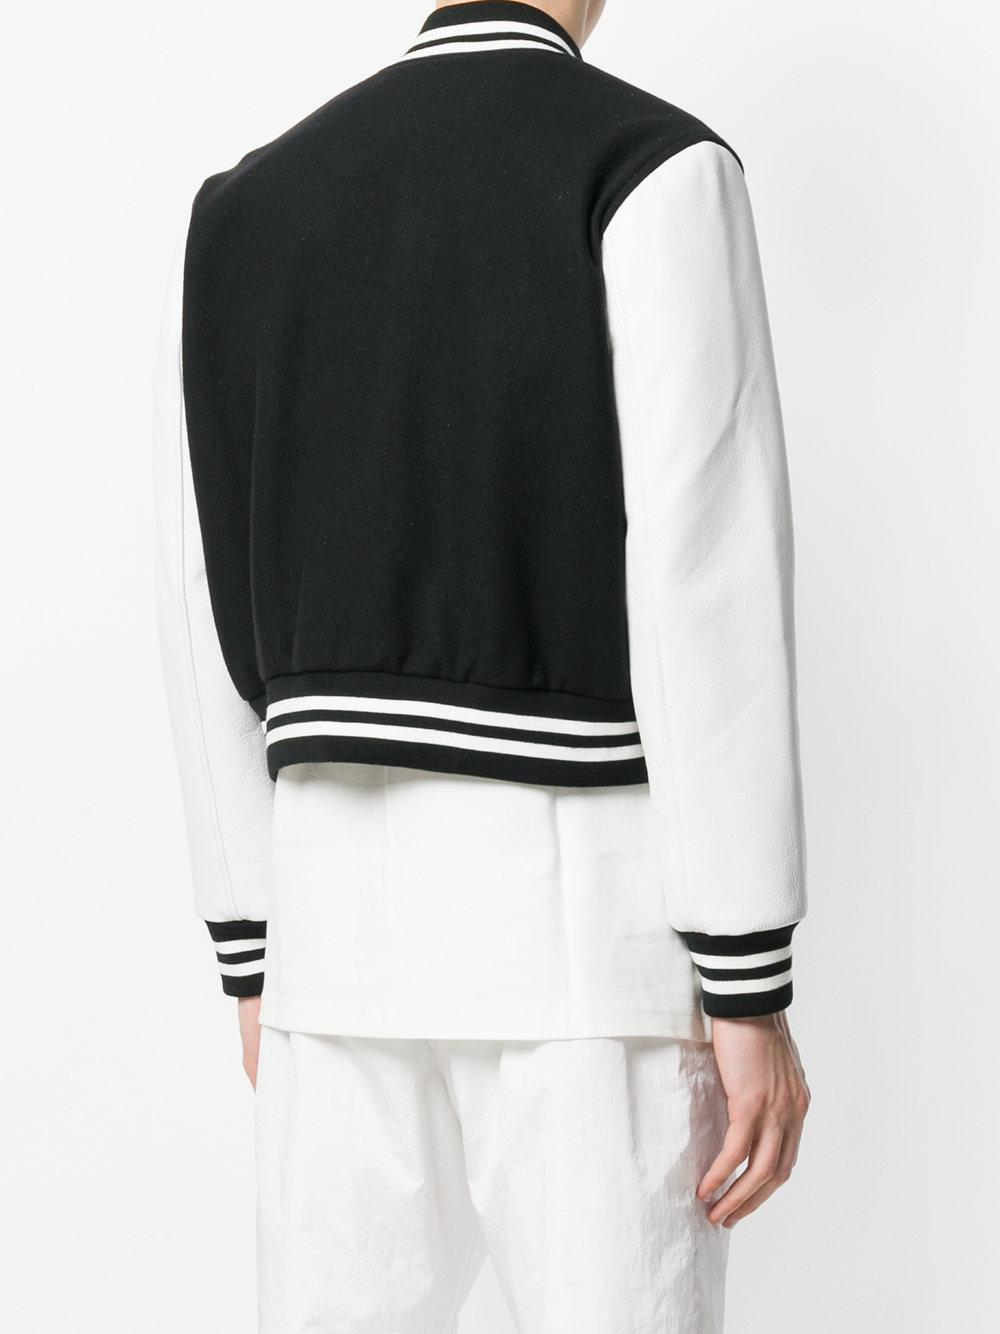 MISBHV Wool Bomber Jacket in Black for Men